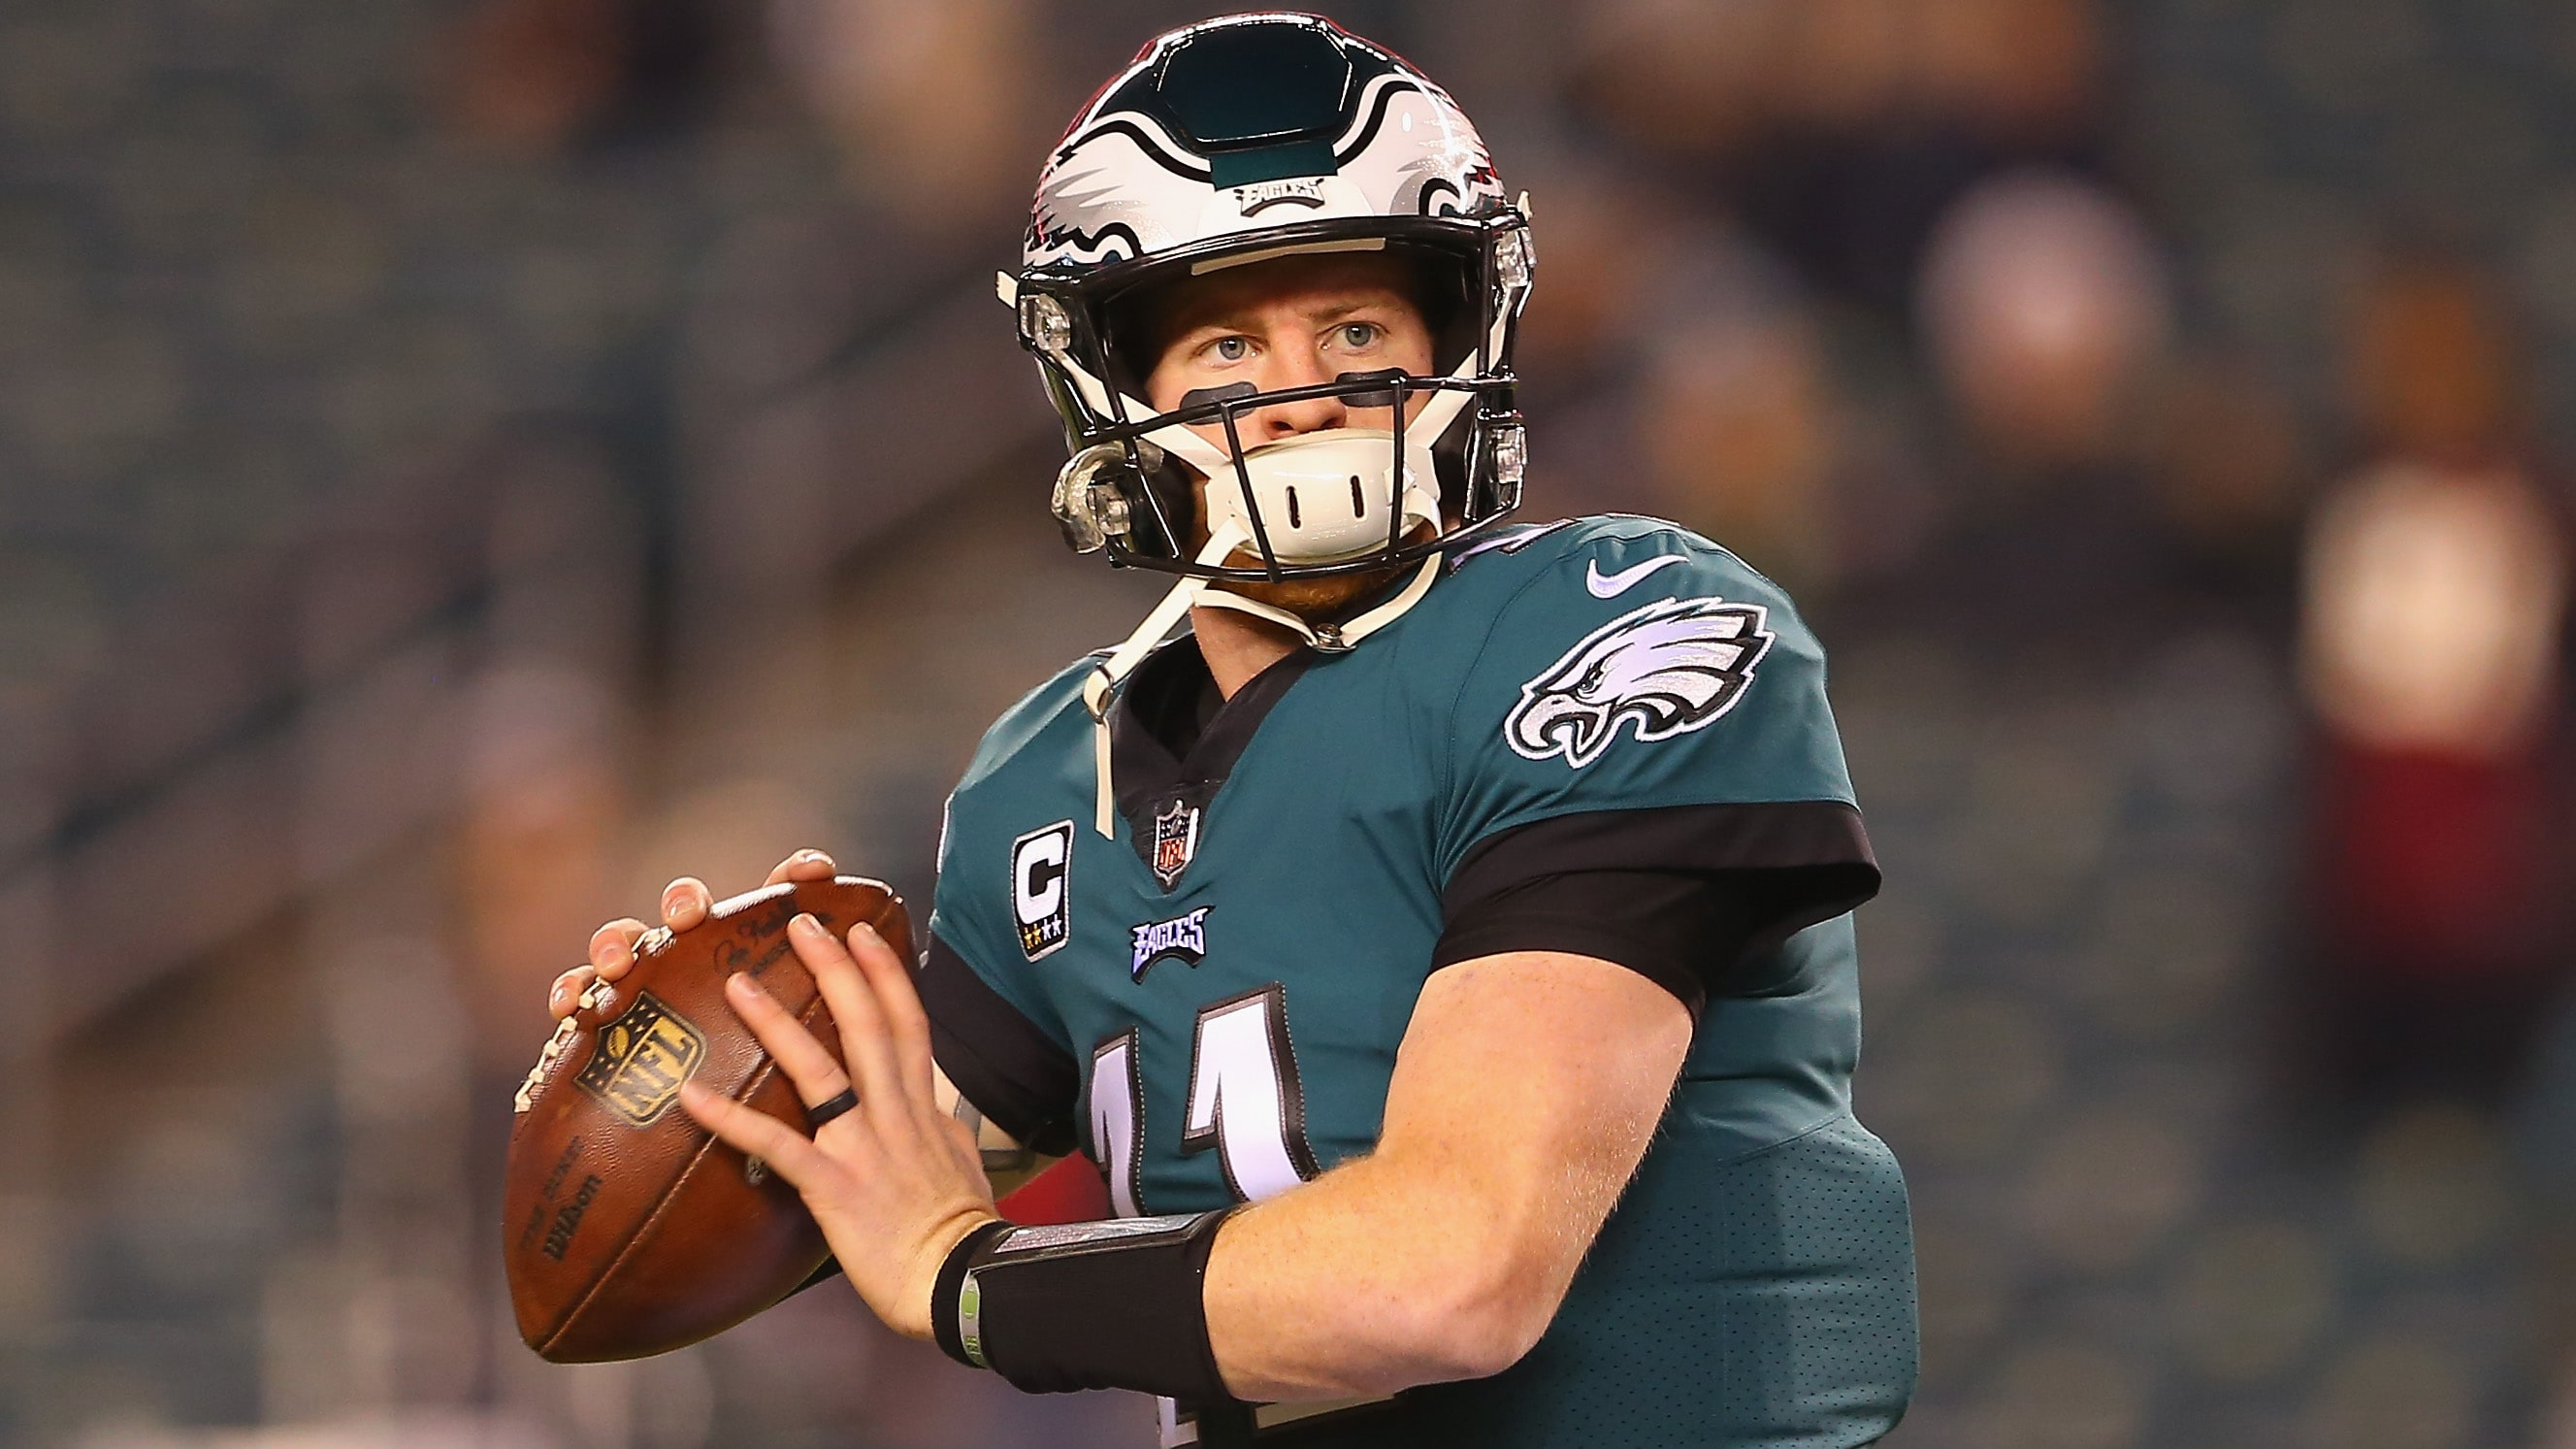 PHILADELPHIA, PA - DECEMBER 03:  Quarterback Carson Wentz #11 of the Philadelphia Eagles warms up before taking on the Washington Redskins at Lincoln Financial Field on December 3, 2018 in Philadelphia, Pennsylvania.  (Photo by Mitchell Leff/Getty Images)